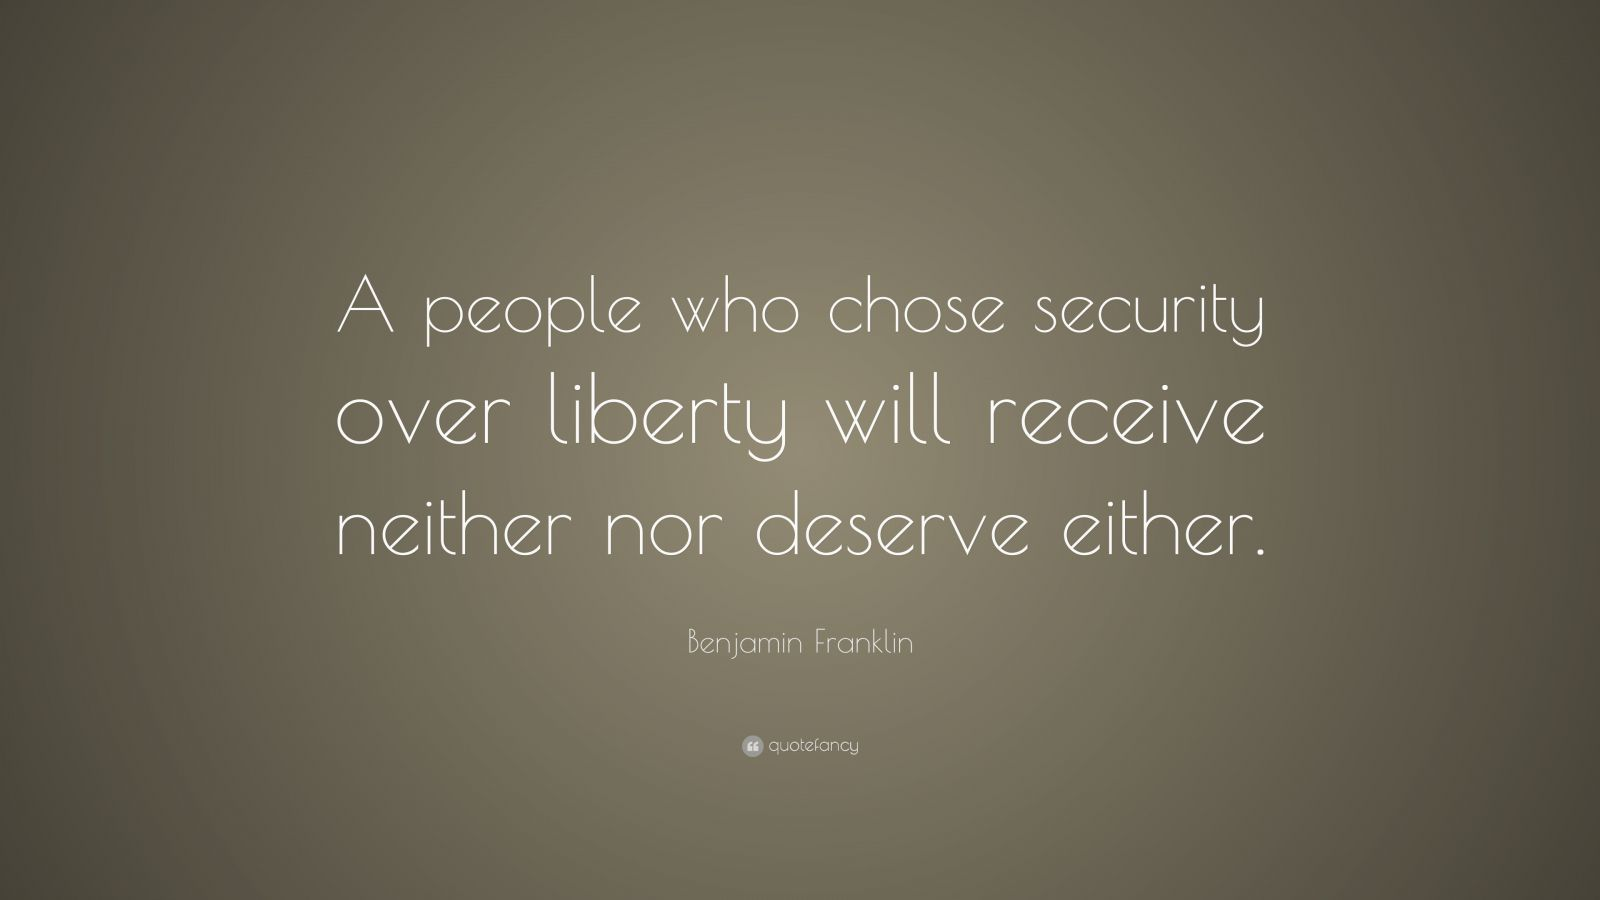 """Benjamin Franklin Quote: """"A people who chose security over liberty will receive neither nor deserve either."""""""